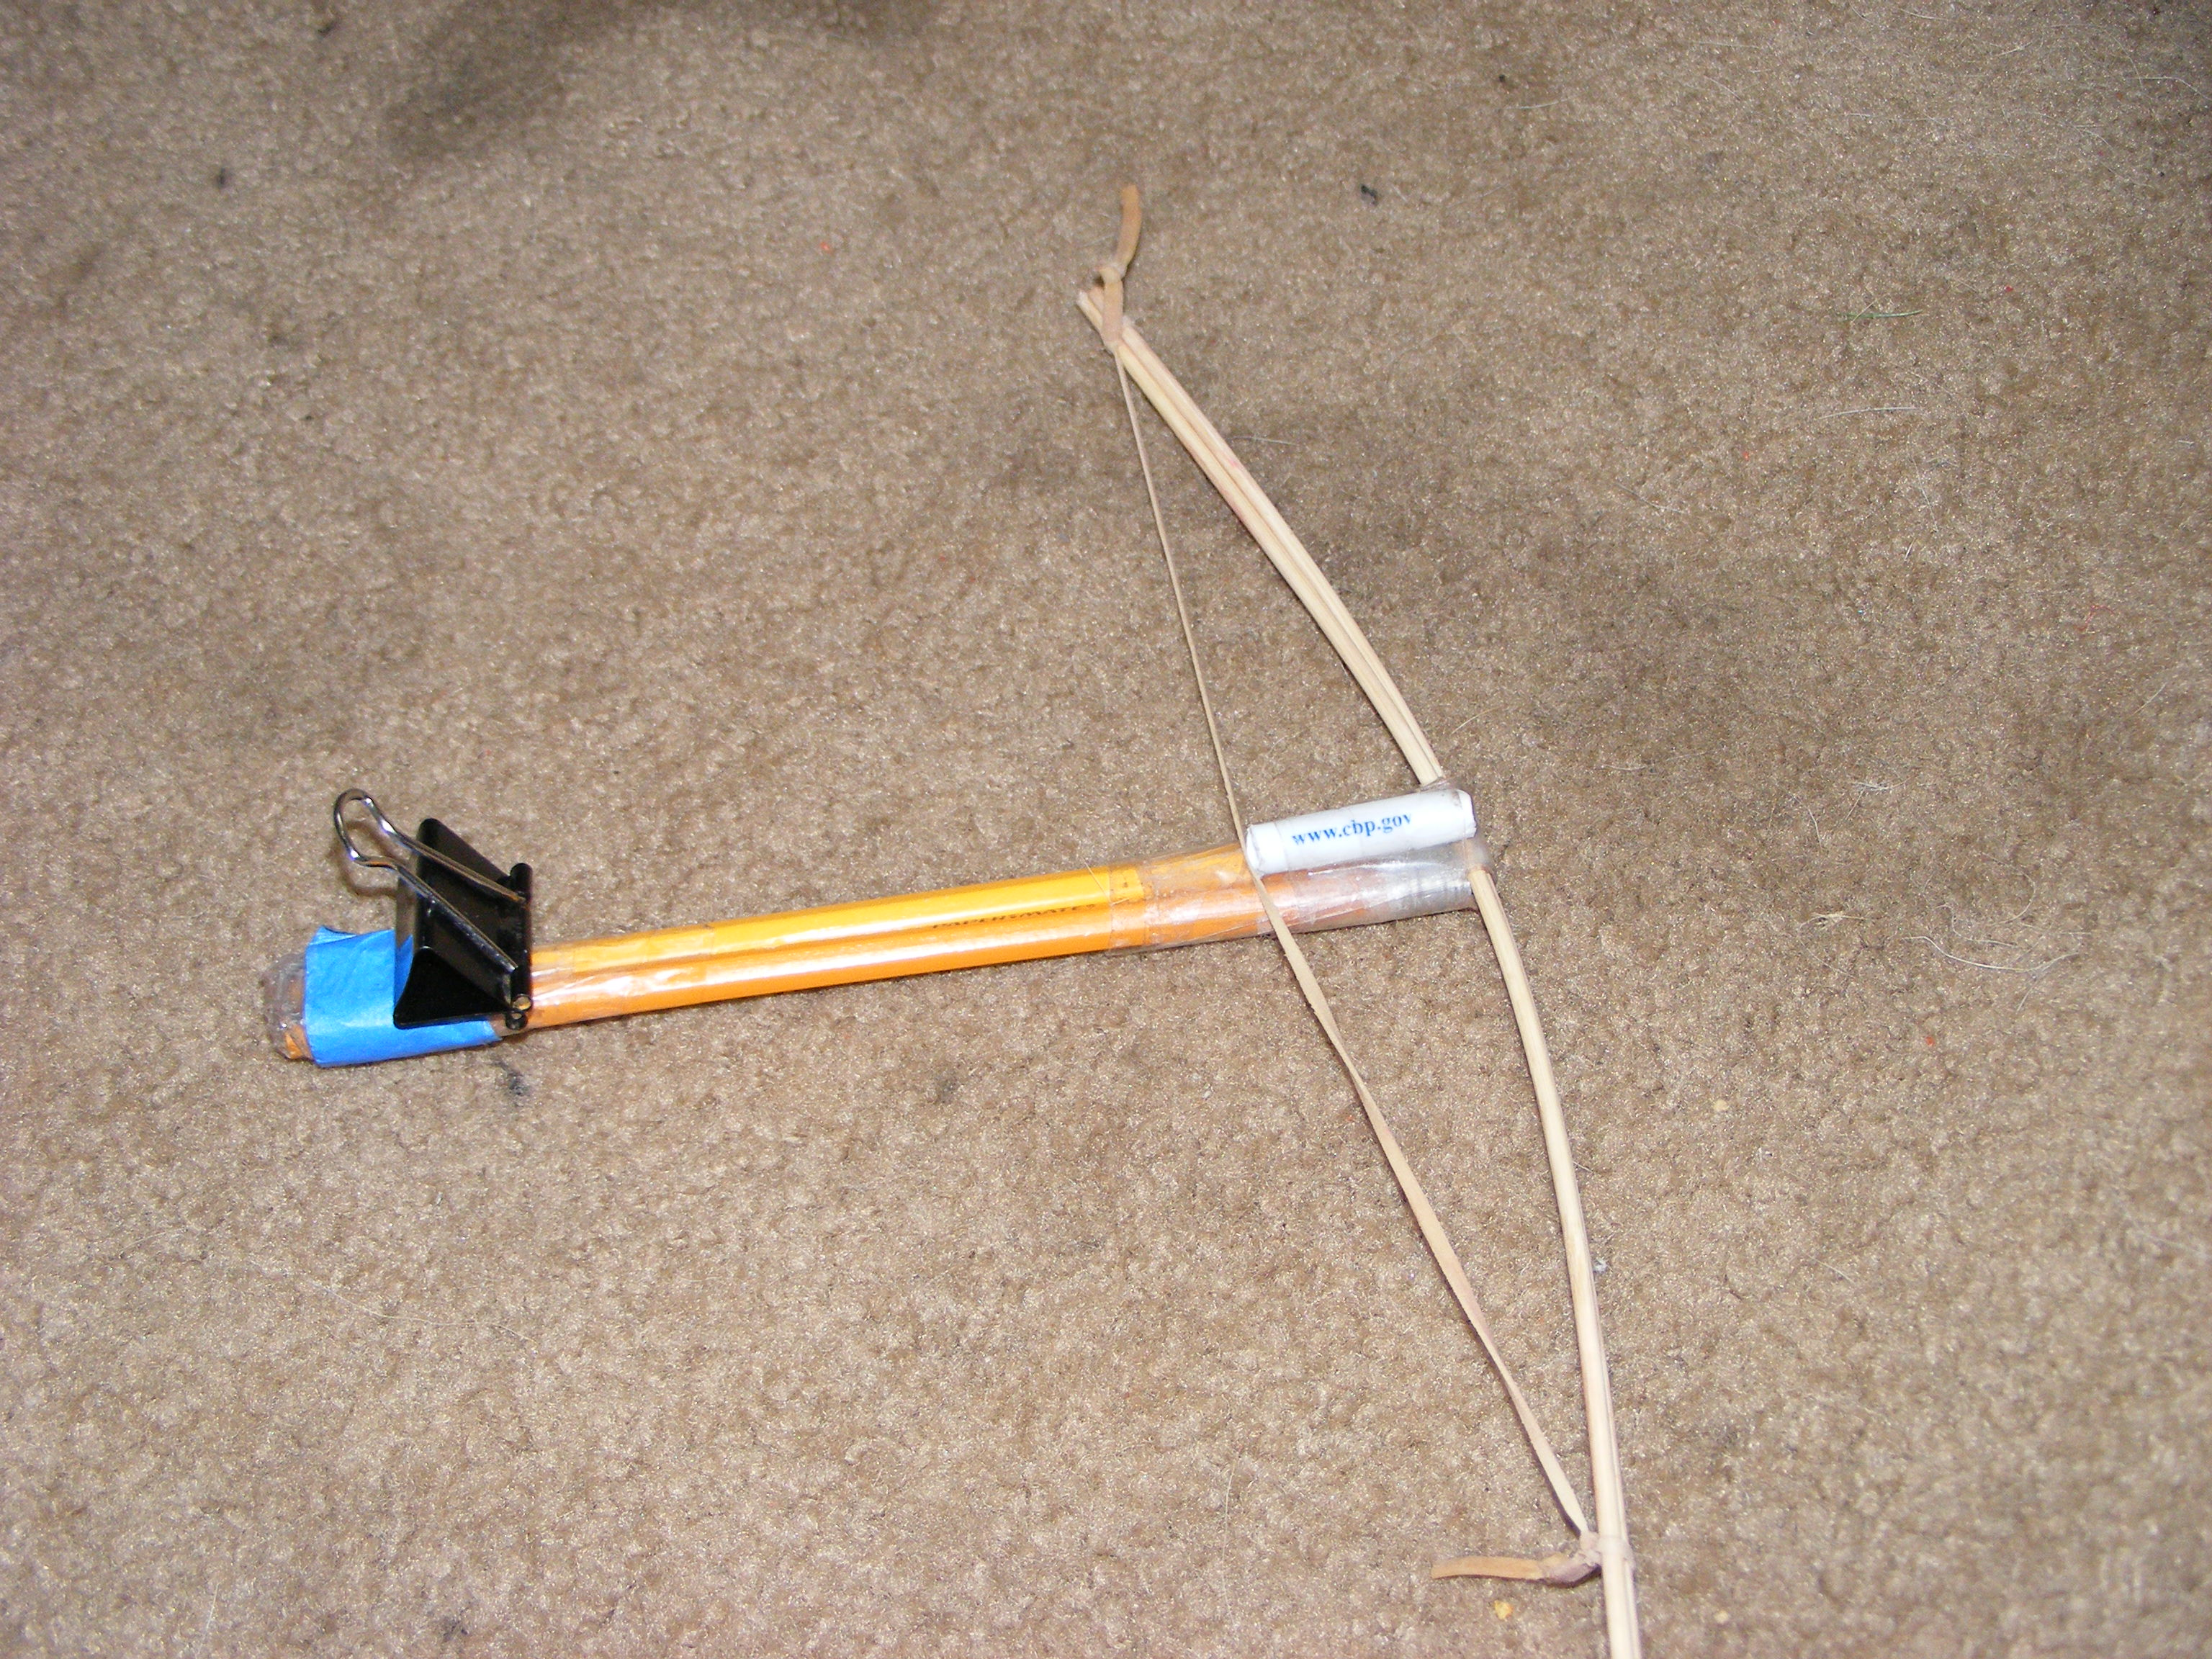 How to make a crossbow at home. We make a mini-crossbow, crossbow of pencils and paper from their own hands 94